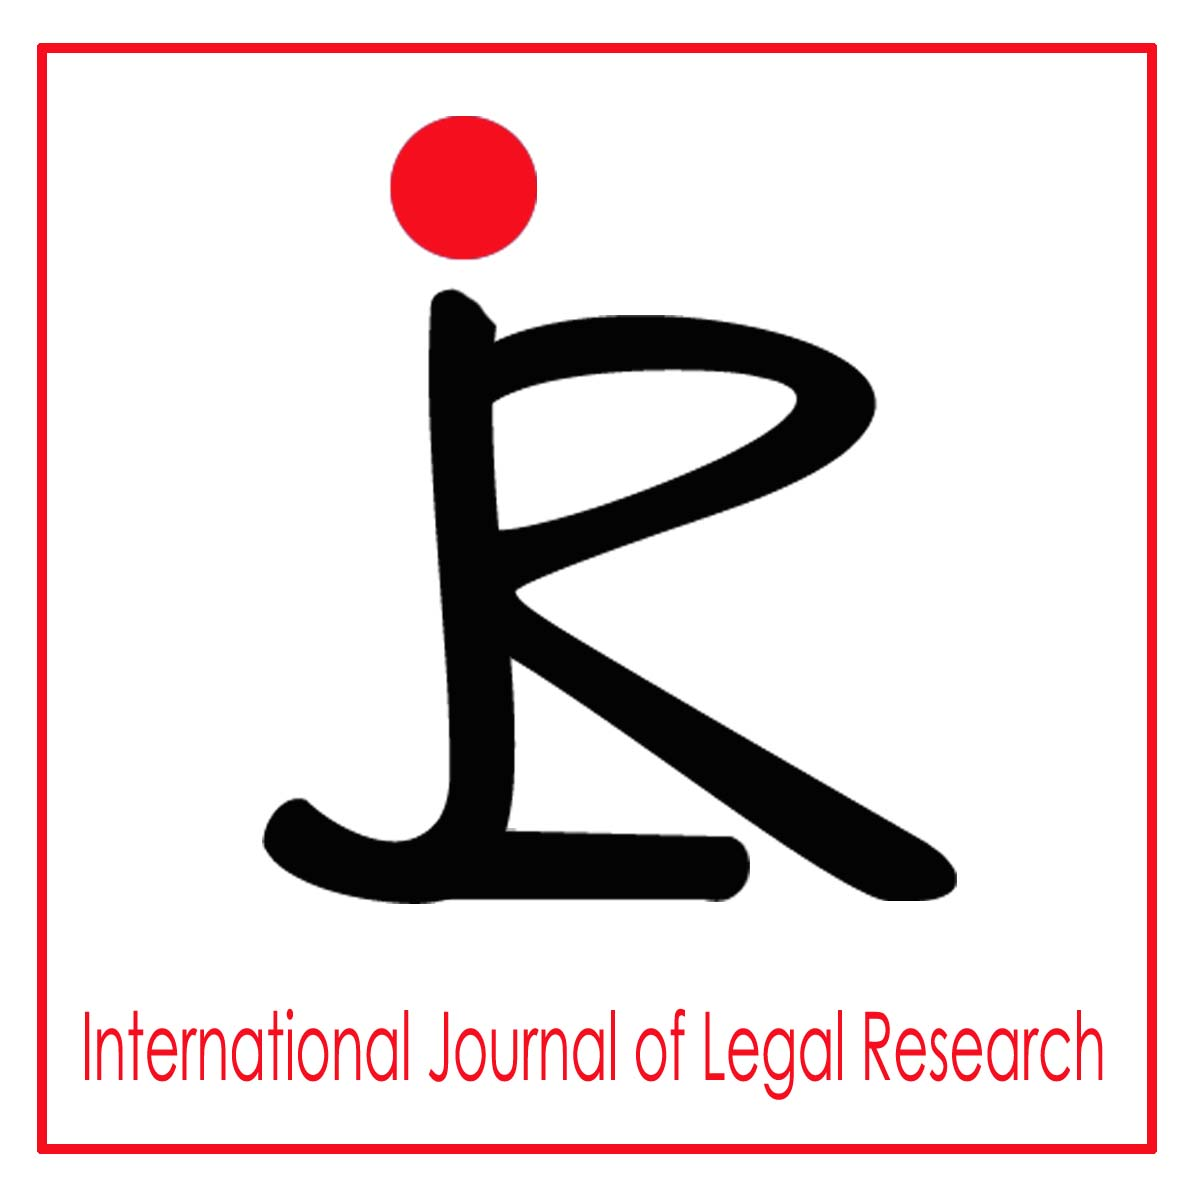 International Journal of Legal Research Vol 5 Issue 3